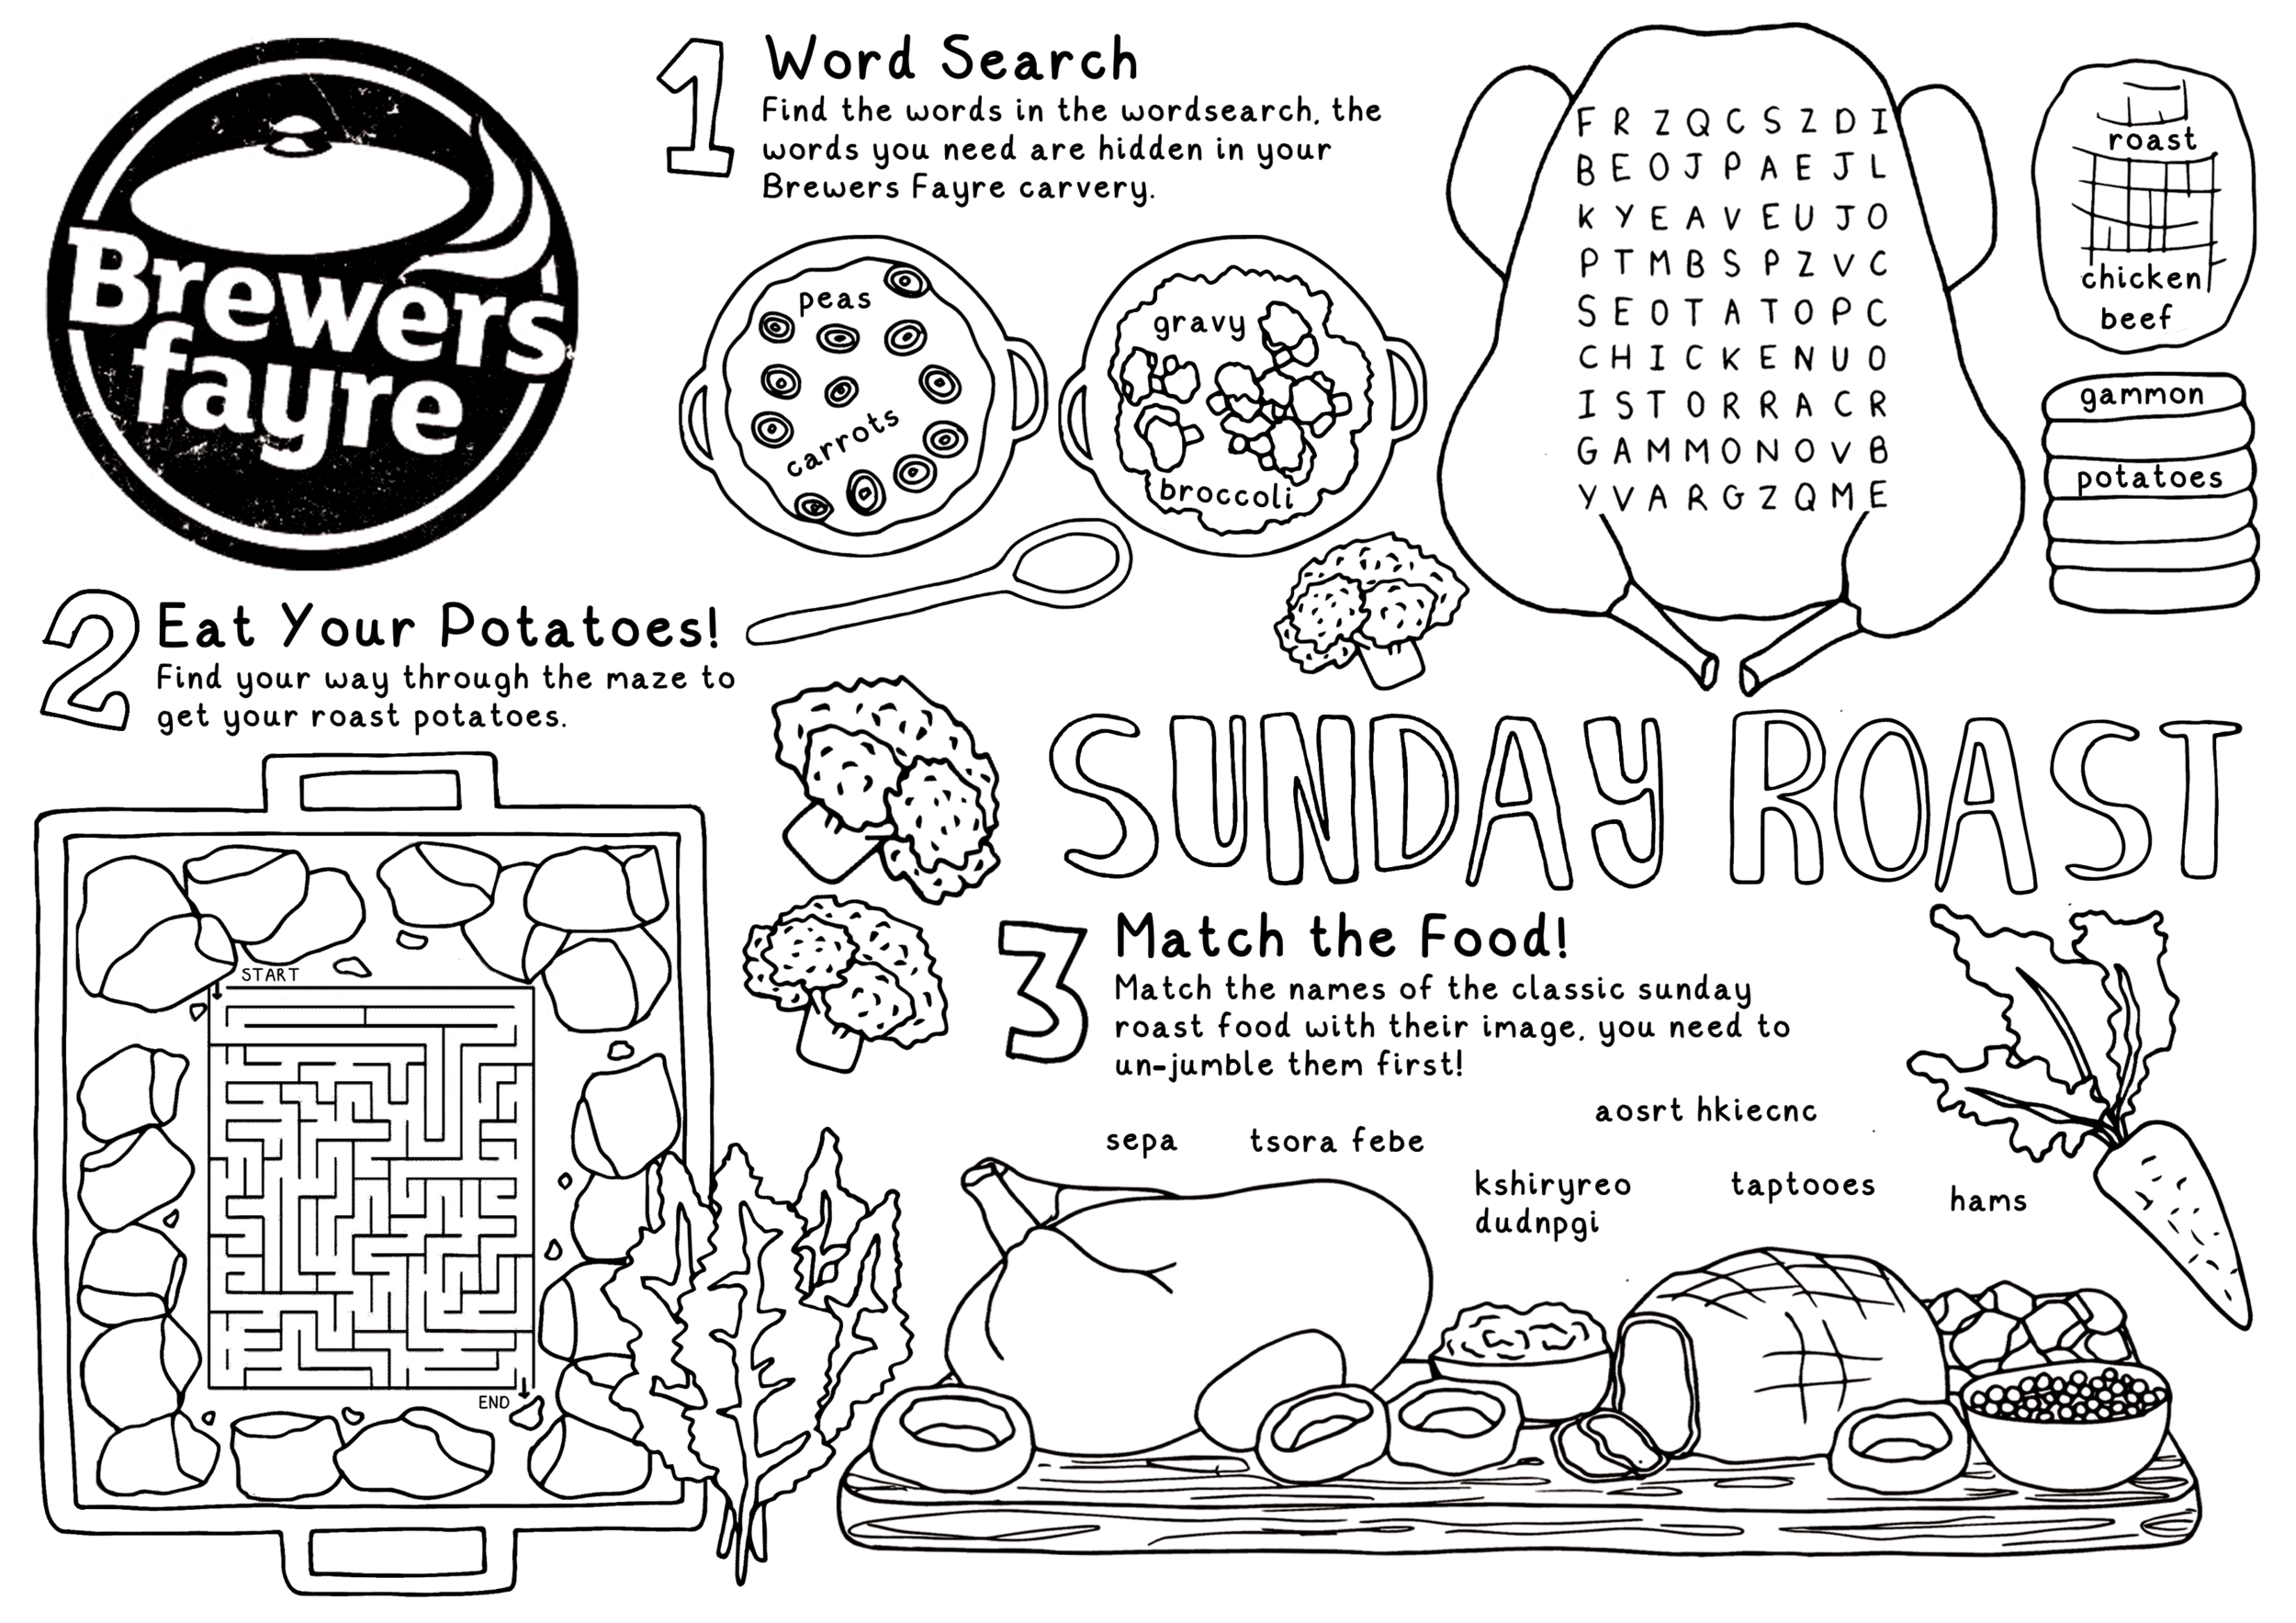 brewers fayre bw.png